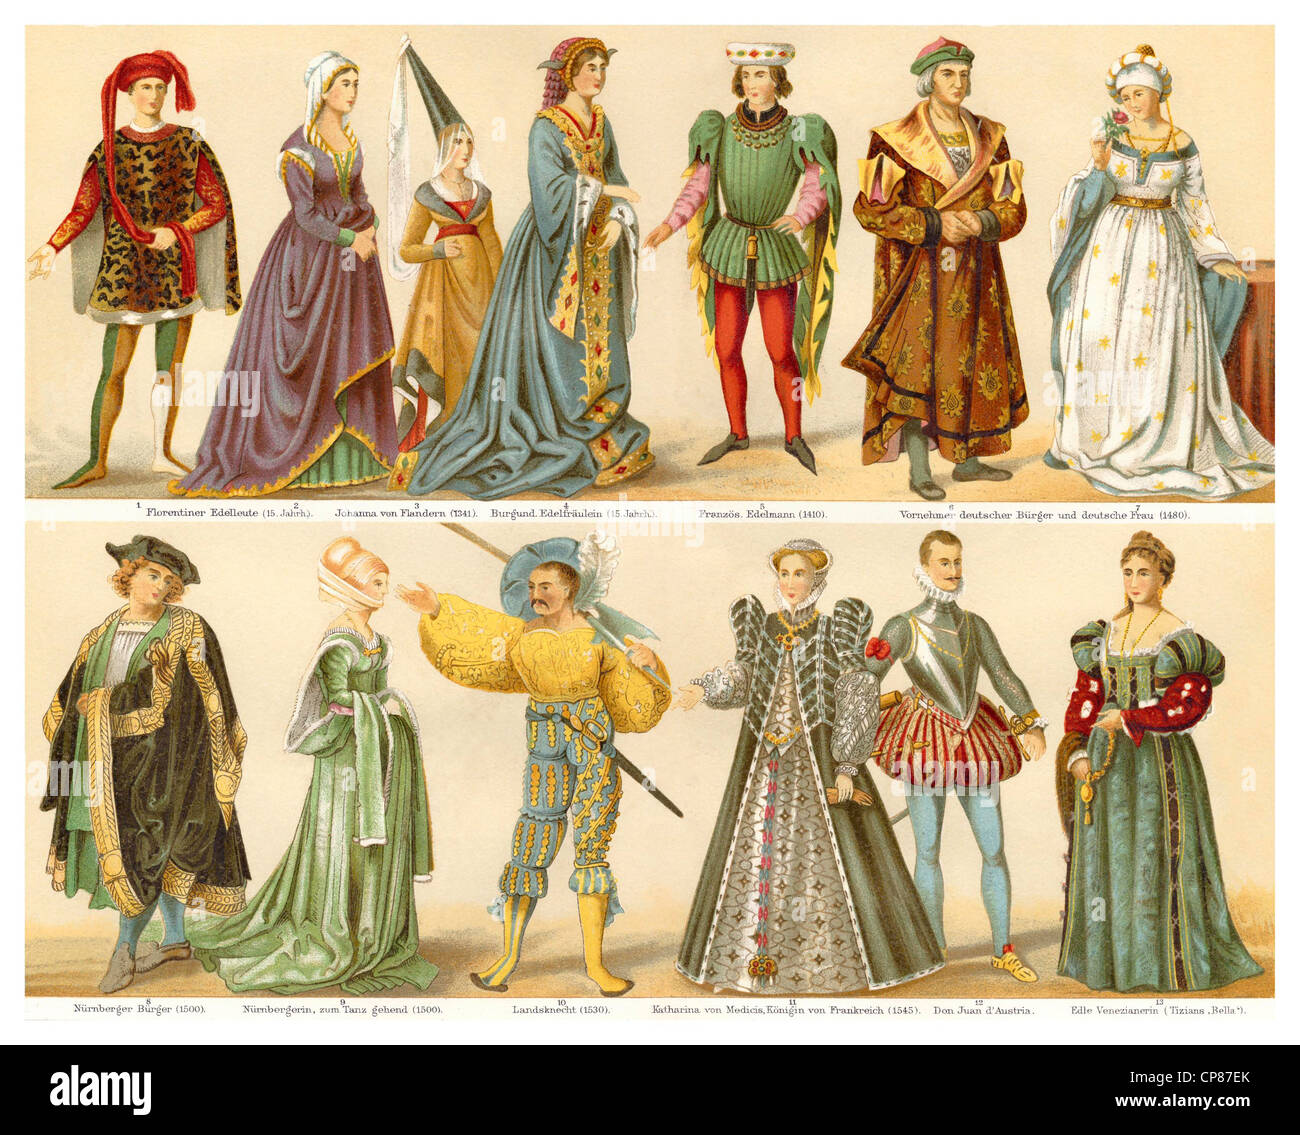 16th century clothing stock photos 16th century clothing stock costumes fashion clothing 15th and 16th century historische zeichnerische darstellung sciox Choice Image